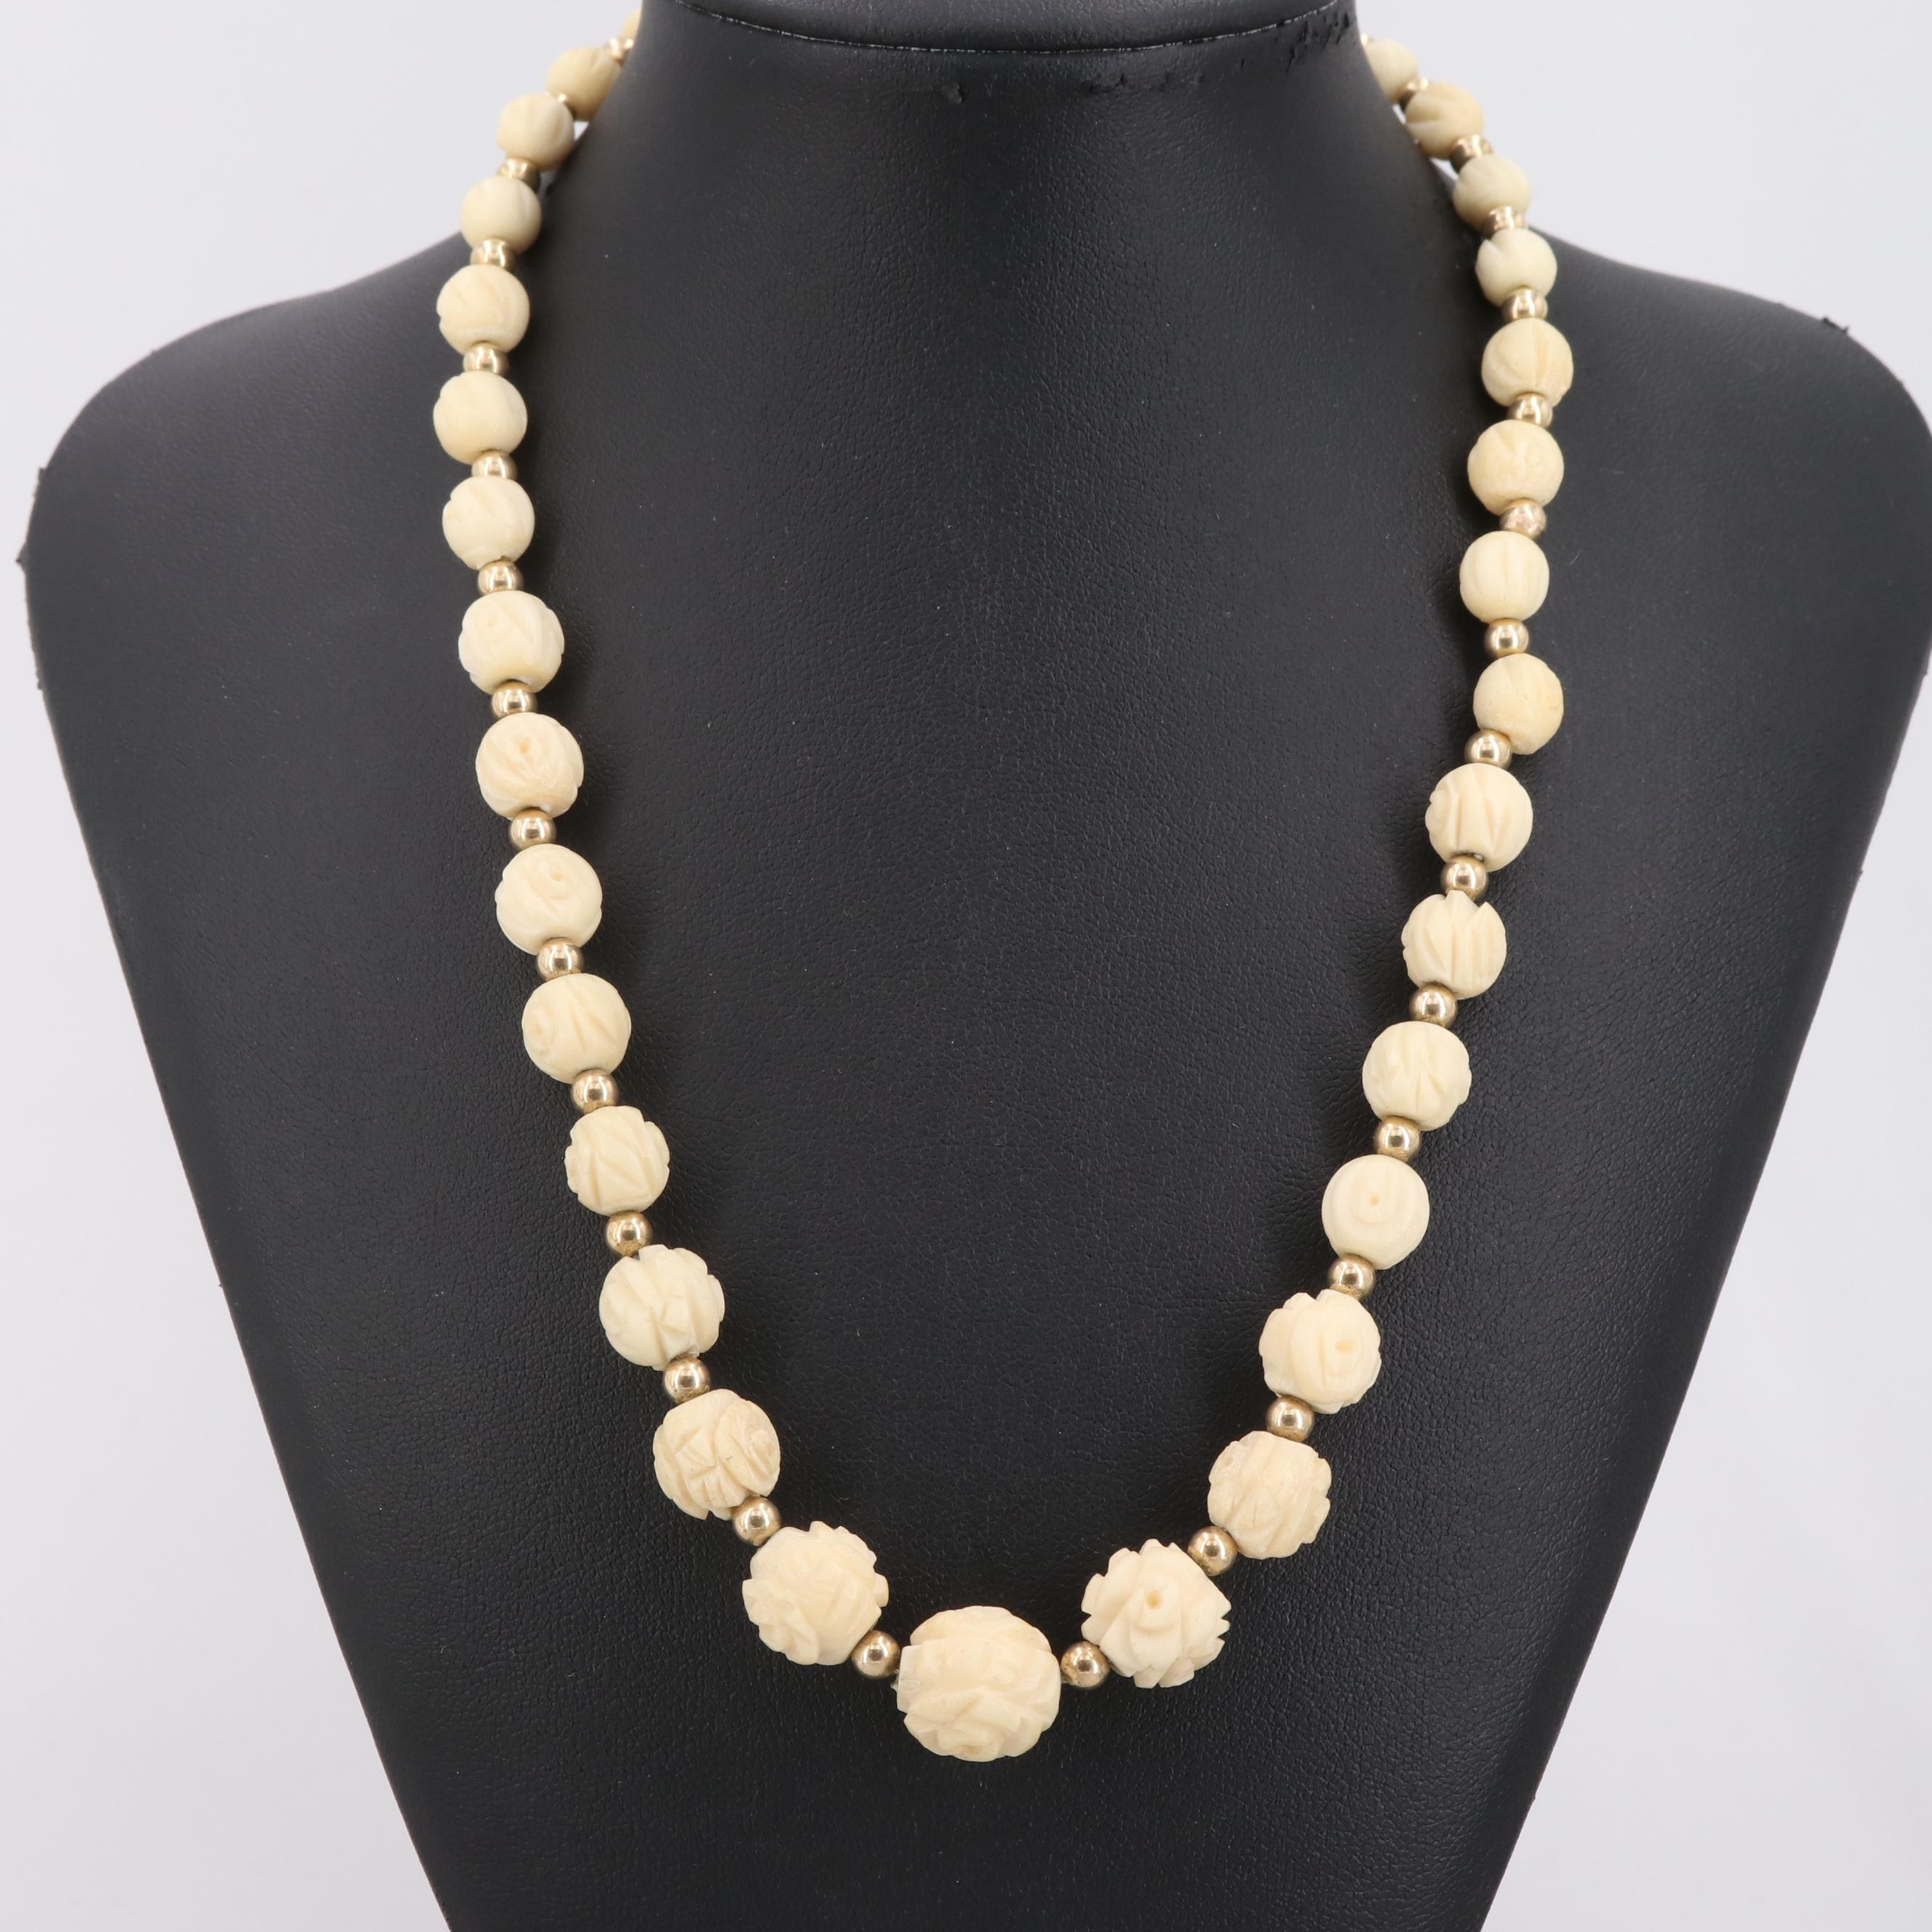 Gold Tone Carved Bone Graduated Necklace with 14K Yellow Gold Clasp